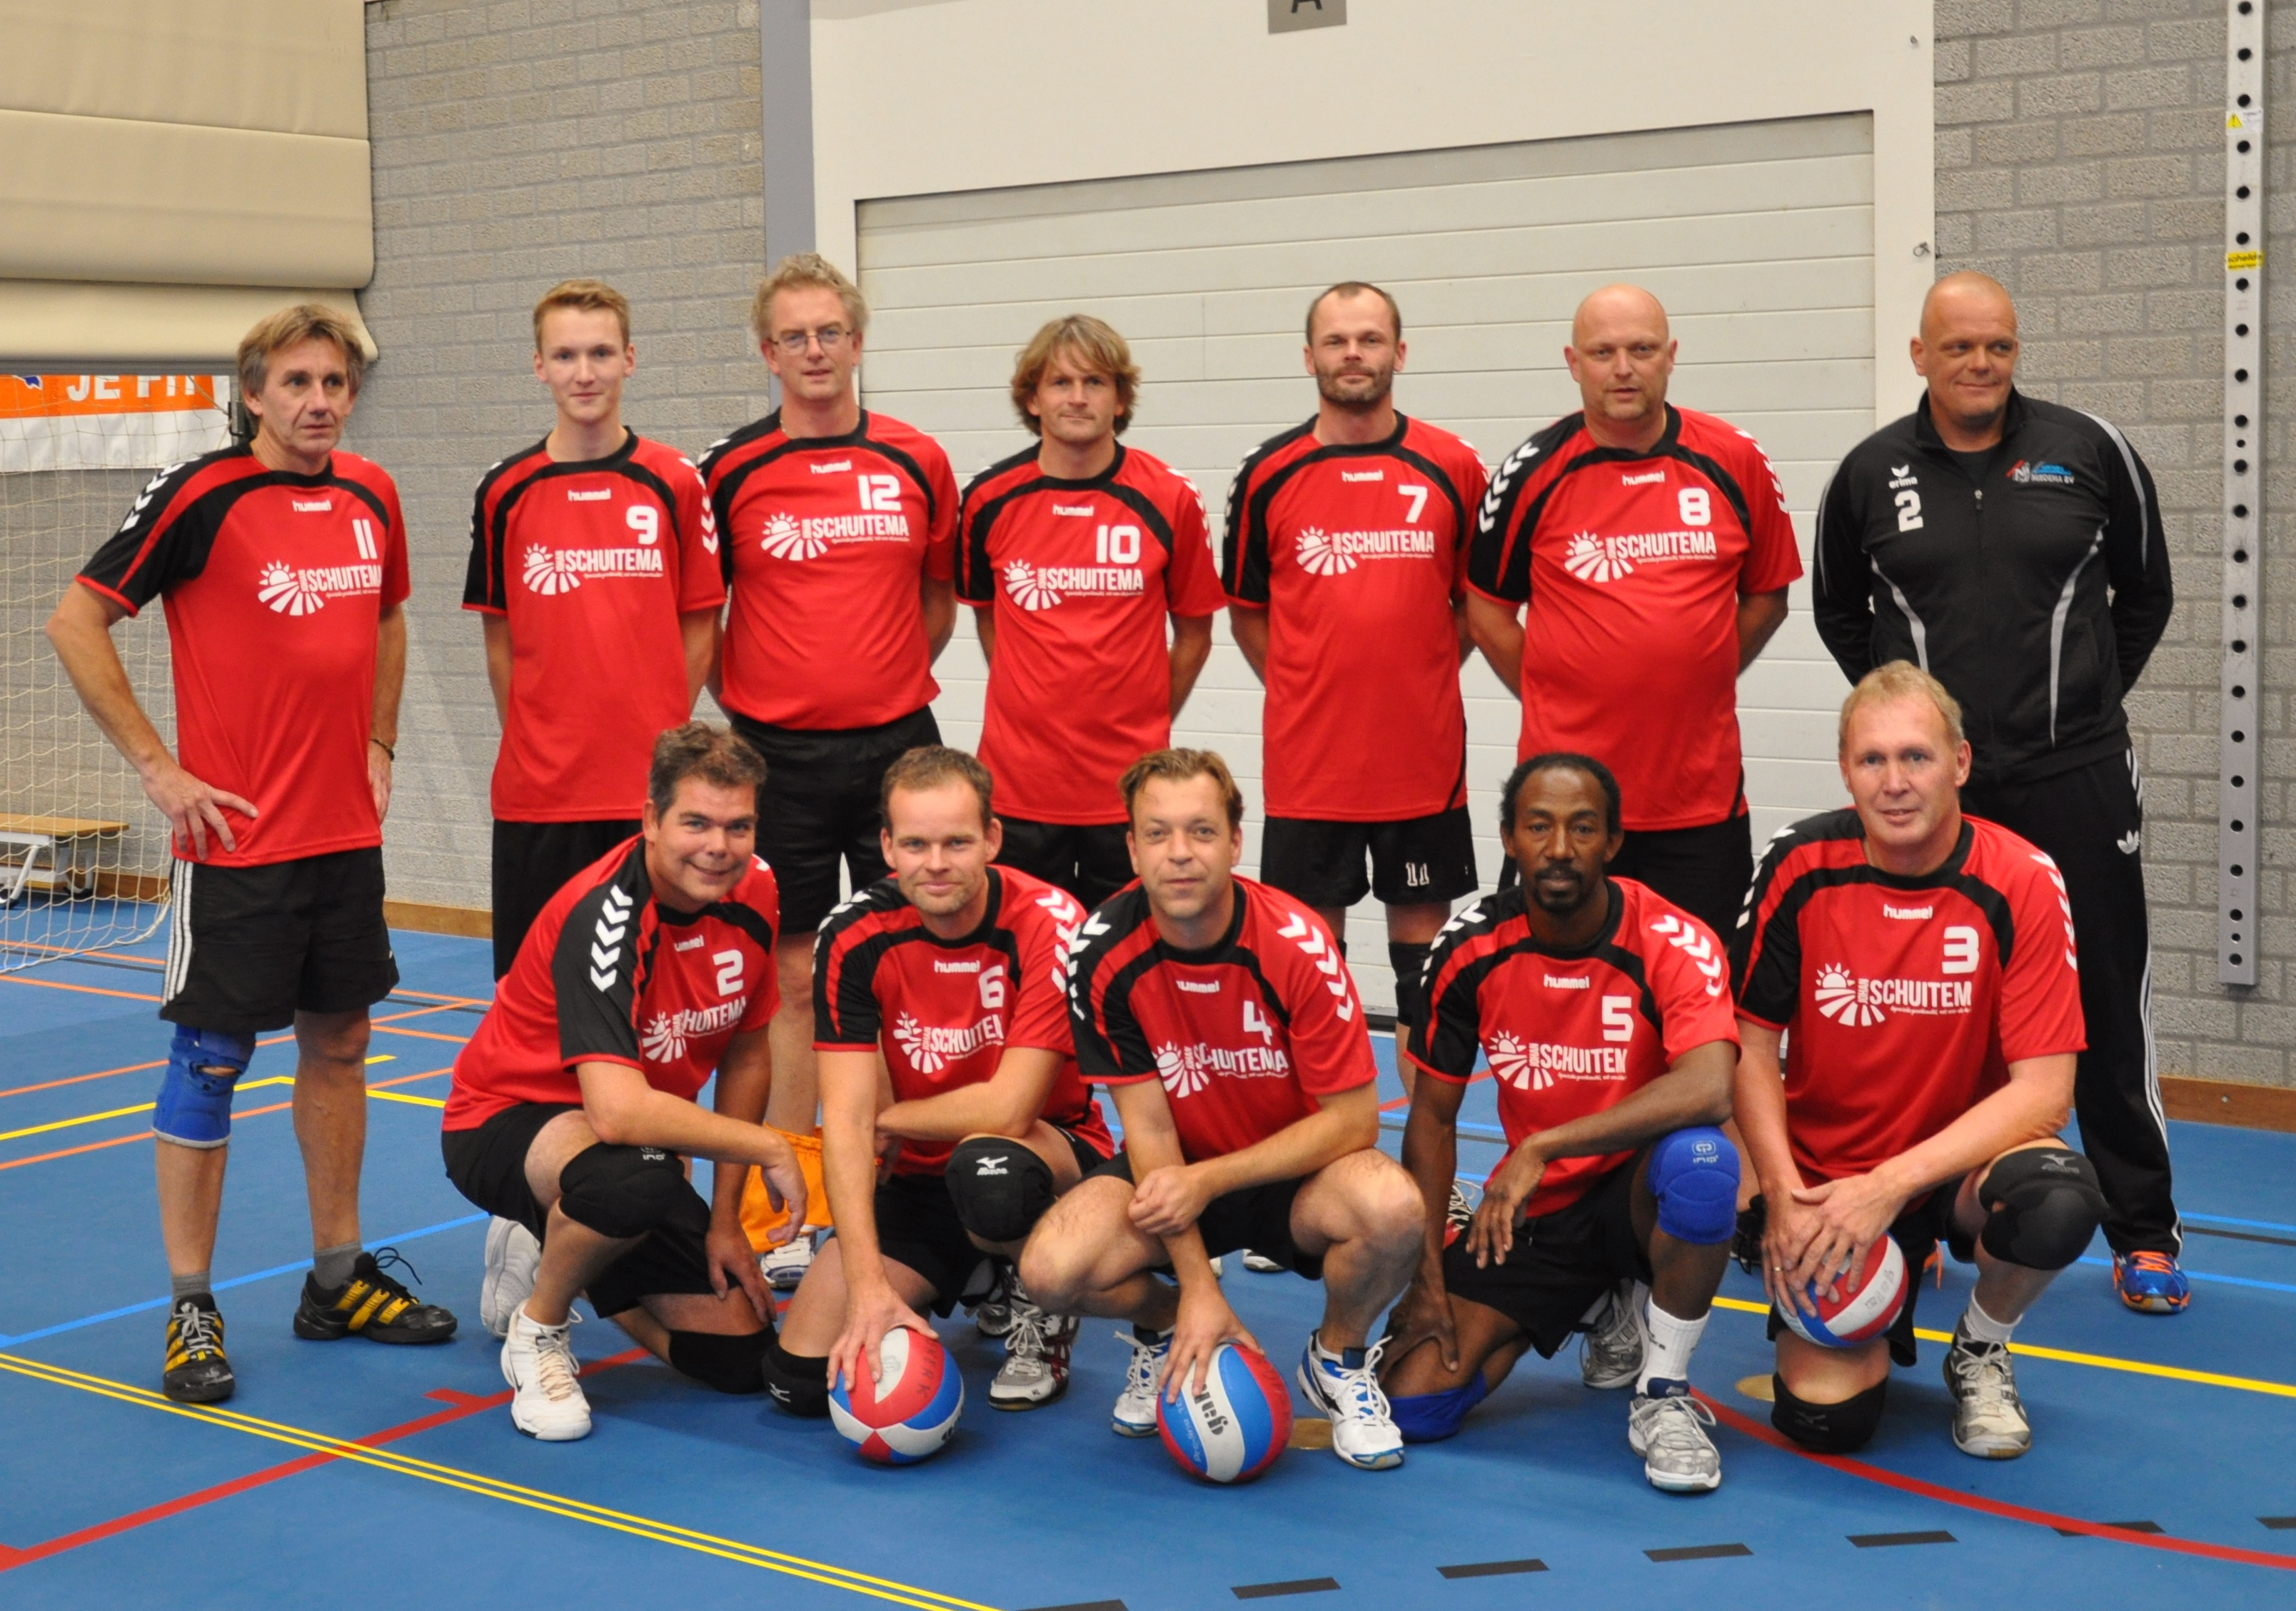 teamfoto heren 2